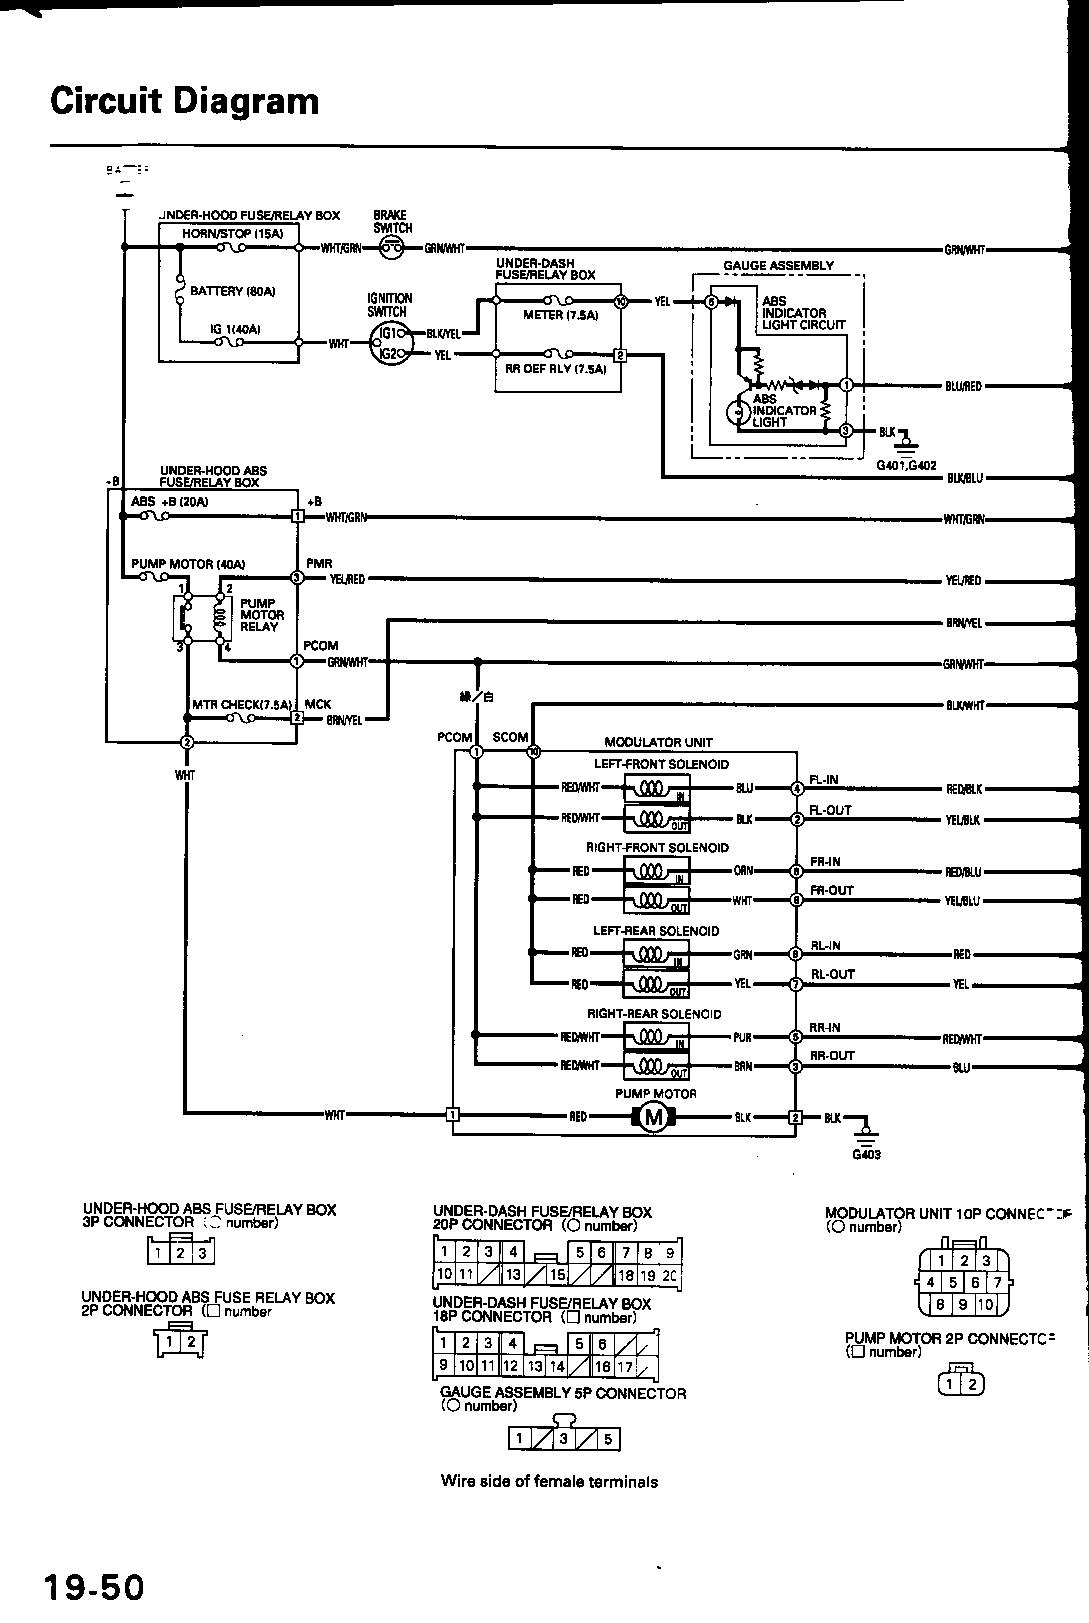 2000 honda civic ex wiring diagram suzuki ltr 450 cigarette lighter fuse in accord 96